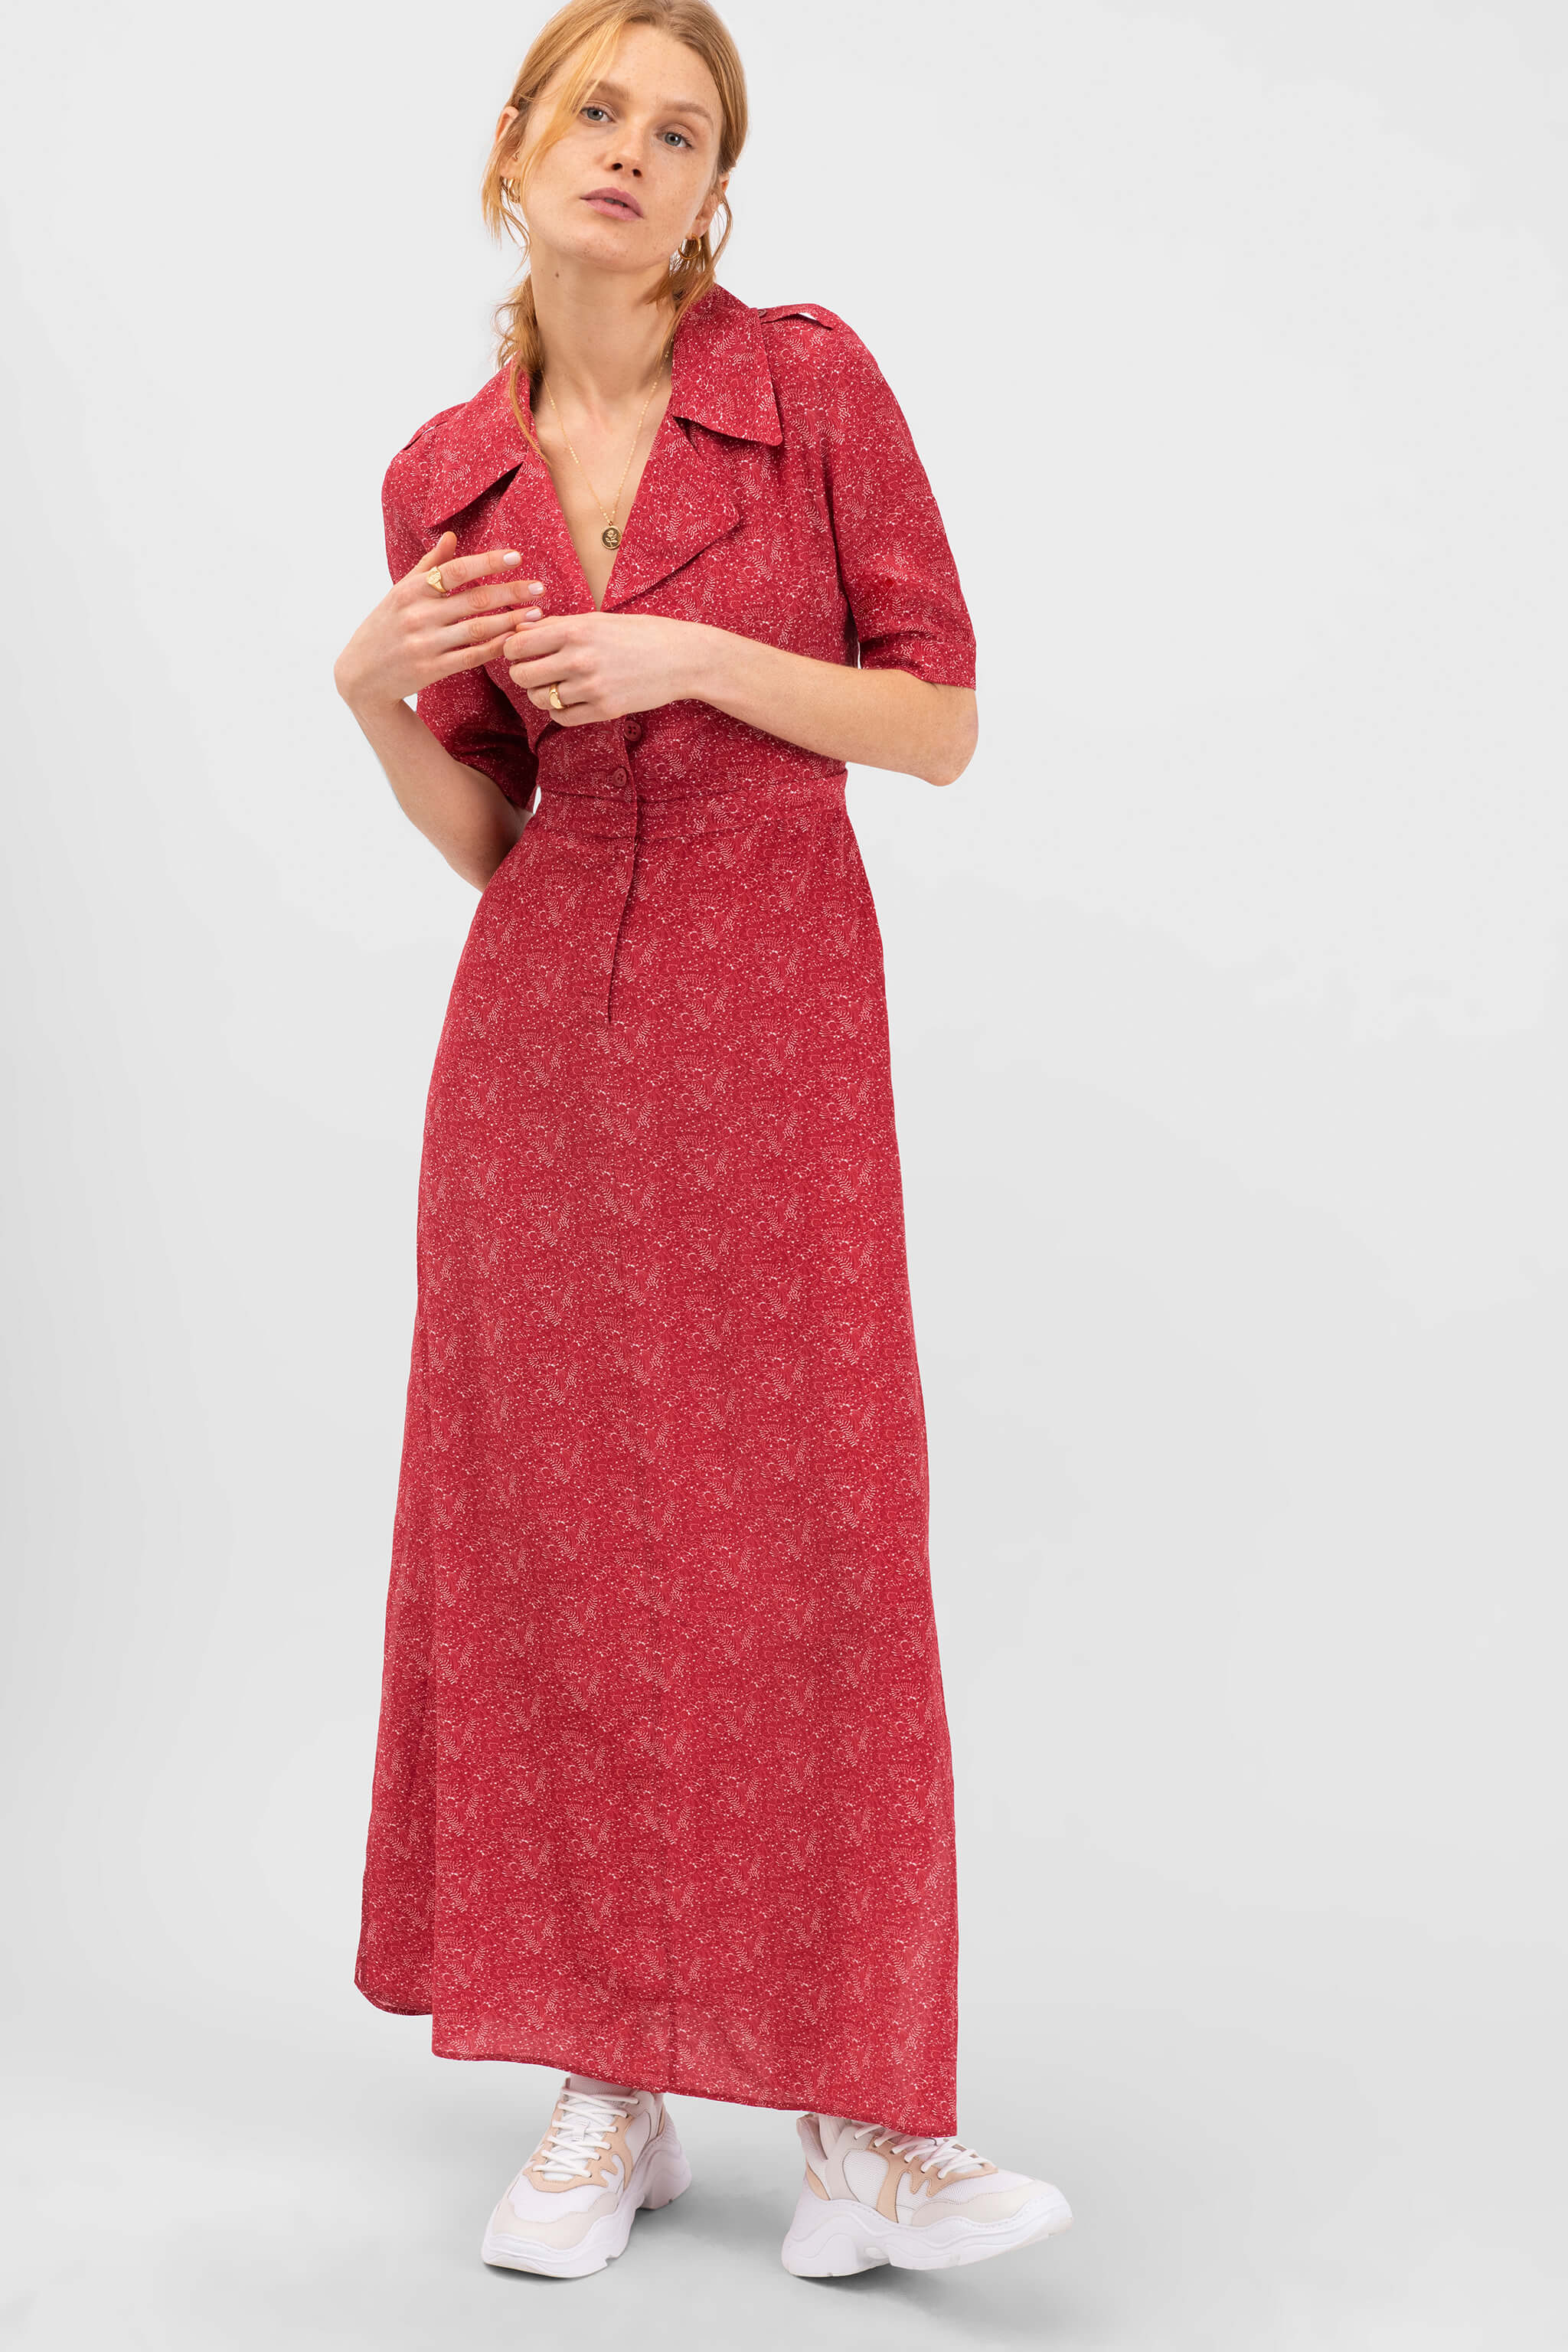 The Trench Dress | Terracotta Vine Floral